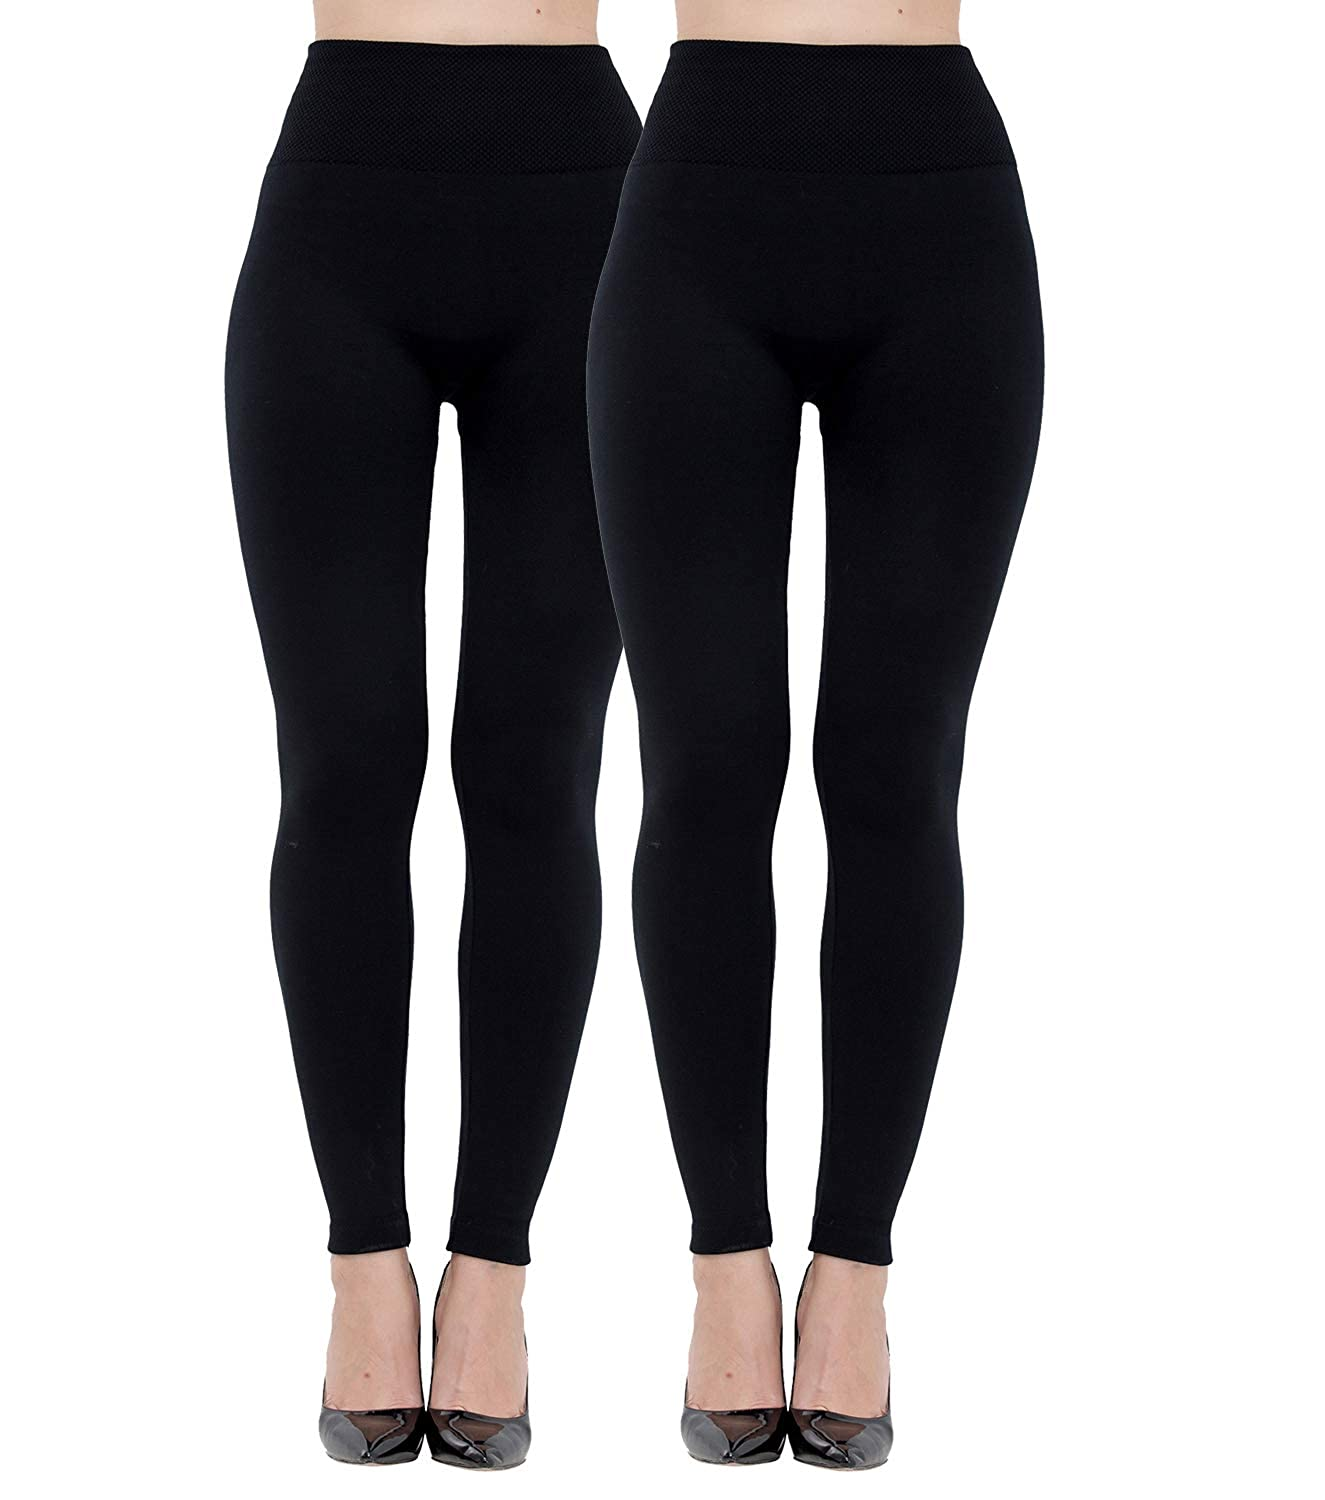 a4cfc7745f6db2 Diravo Fleece Lined Leggings for Women. High Waist-Stretch Leggings Pants  Thick Black (2 Pack(Black/Black)): Amazon.ca: Clothing & Accessories